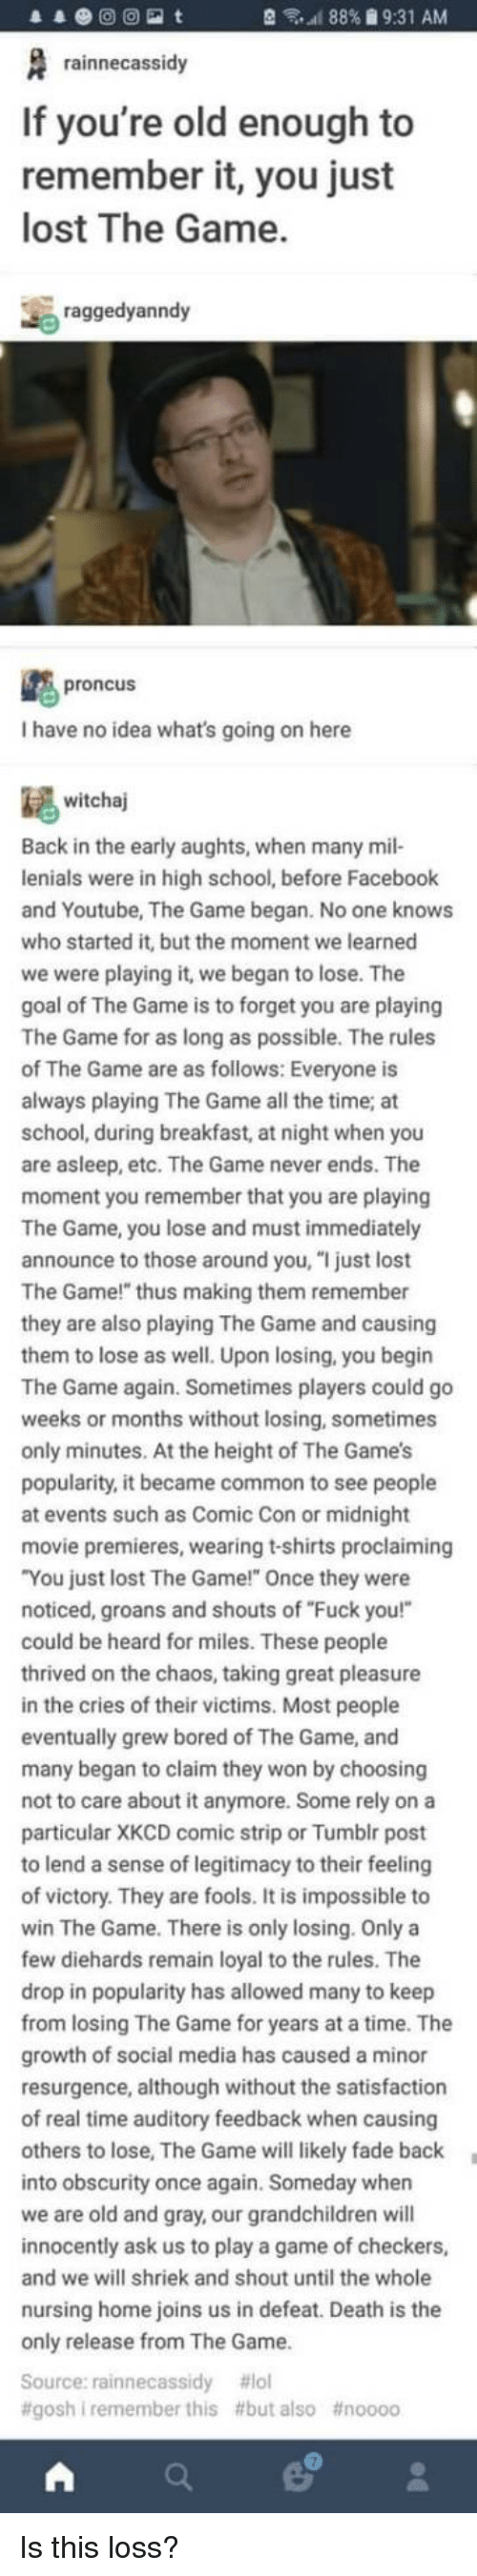 "The Games: 88% 9:31 AM  rainnecassidy  If you're old enough to  remember it, you just  lost The Game.  raggedyanndy  proncus  I have no idea what's going on here  witchaj  Back in the early aughts, when many mil-  lenials were in high school, before Facebook  and Youtube, The Game began. No one knows  who started it, but the moment we learned  we were playing it, we began to lose. The  goal of The Game is to forget you are playing  The Game for as long as possible. The rules  The Game are as follows: Everyone is  ays playing The Game all the time; at  school, during breakfast, at night when you  are asleep, etc. The Game never ends. The  moment you remember that you are playing  The Game, you lose and must immediately  announce to those around you, ""I just lost  The Game!"" thus making them remember  they are also playing The Game and causing  them to lose as well. Upon losing, you begin  The Game again. Sometimes players could go  weeks or months without losing, sometimes  only minutes. At the height of The Game's  popularity, it became common to see people  at events such as Comic Con or midnight  movie premieres, wearing t-shirts proclaiming  You just lost The Game!"" Once they were  noticed, groans and shouts of ""Fuck you!""  could be heard for miles. These people  rived on the chaos, taking great pleasure  in the cries of their victims. Most people  eventually grew bored of The Game, and  many began to claim they won by choosing  not to care about it anymore. Some rely on a  particular XKCD comic strip or Tumblr post  to lend a sense of legitimacy to their feeli  of victory. They are fools. It is impossible to  win The Game. There is only losing. Only a  few diehards remain loyal to the rules. The  drop in popularity has allowed many to keep  m losing The Game for years at a time. The  growth of social media has caused a minor  resurgence, although without the satisfaction  of real time auditory feedback when caus  others to lose, The Game will likely fade back  into obscurity once again. Someday whern  we are old and gray, our grandchildren will  innocently ask us to play a game of checkers,  and we will shriek and shout until the whole  nursing home joins us in defeat. Death is the  only release from The Game  Source: rainnecassidy #101  #goshi remember this #but also Is this loss?"